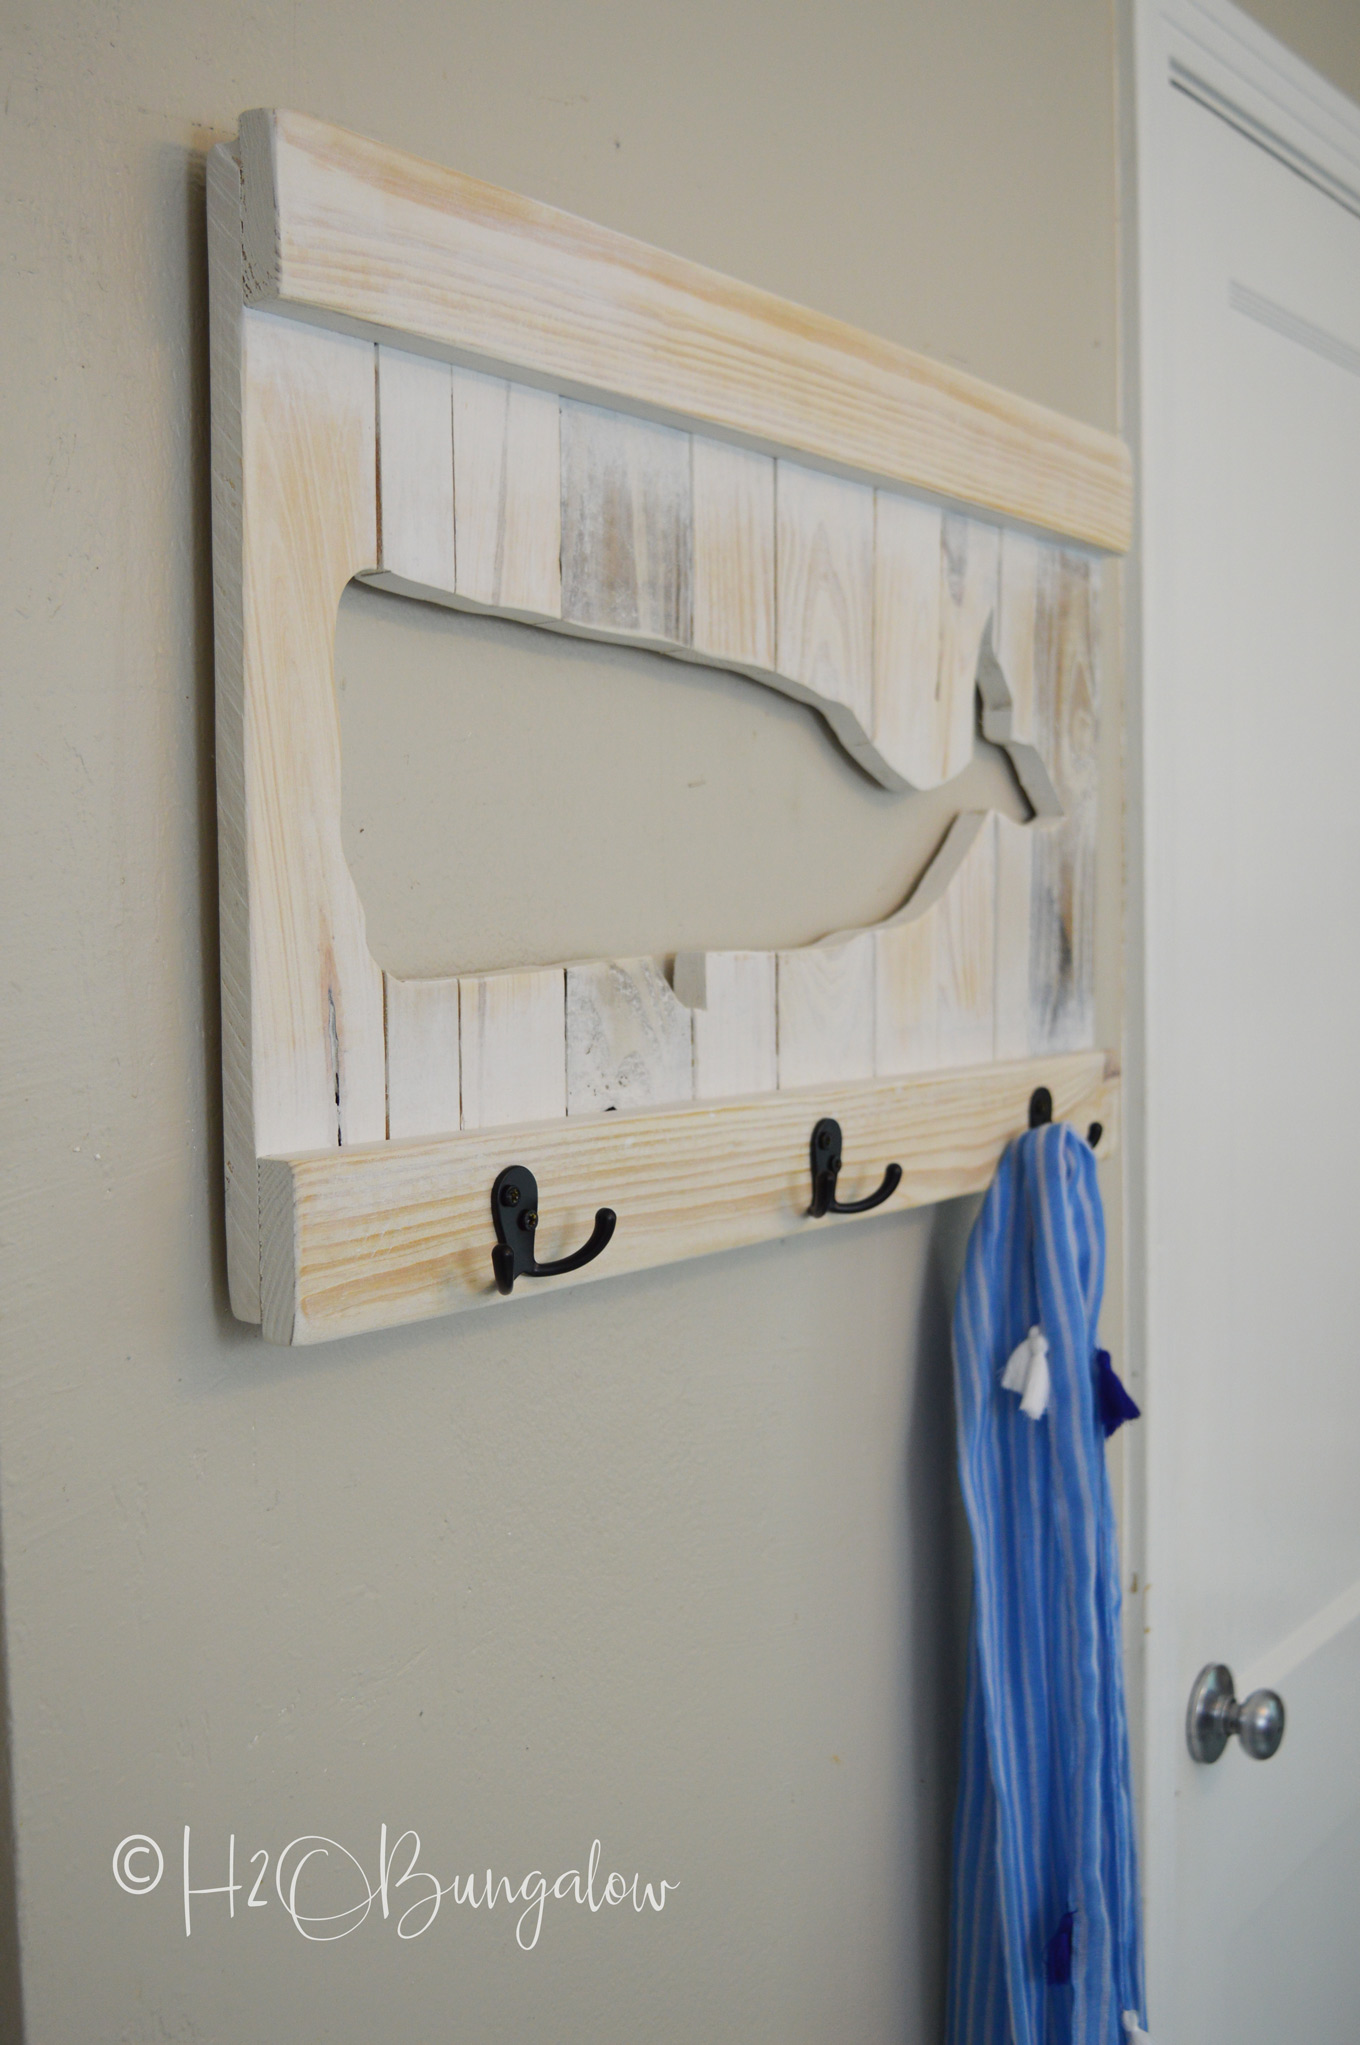 You can easily make a DIY whale coat rack or towel rack for beach towels like mine out of pallets or scrap wood. Follow my instructions for a wood cut-out whale and use your own design to make a sturdy custom coat or towel rack that fits your decor style!